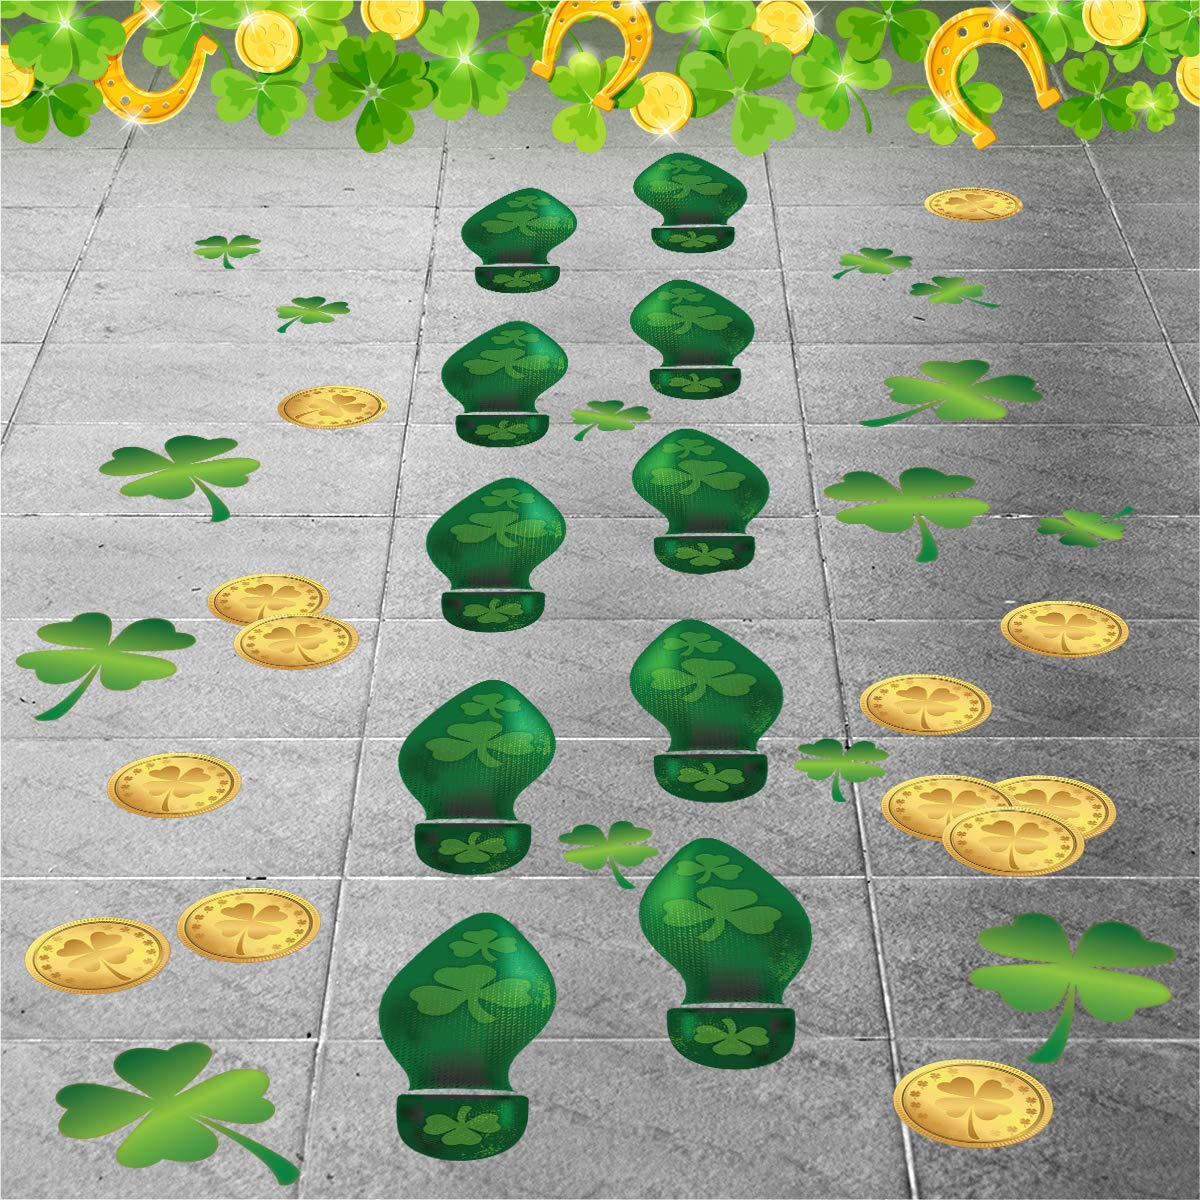 graphic about Leprechaun Feet Printable known as : Colonel Pickles Novelties Leprechaun Footprint